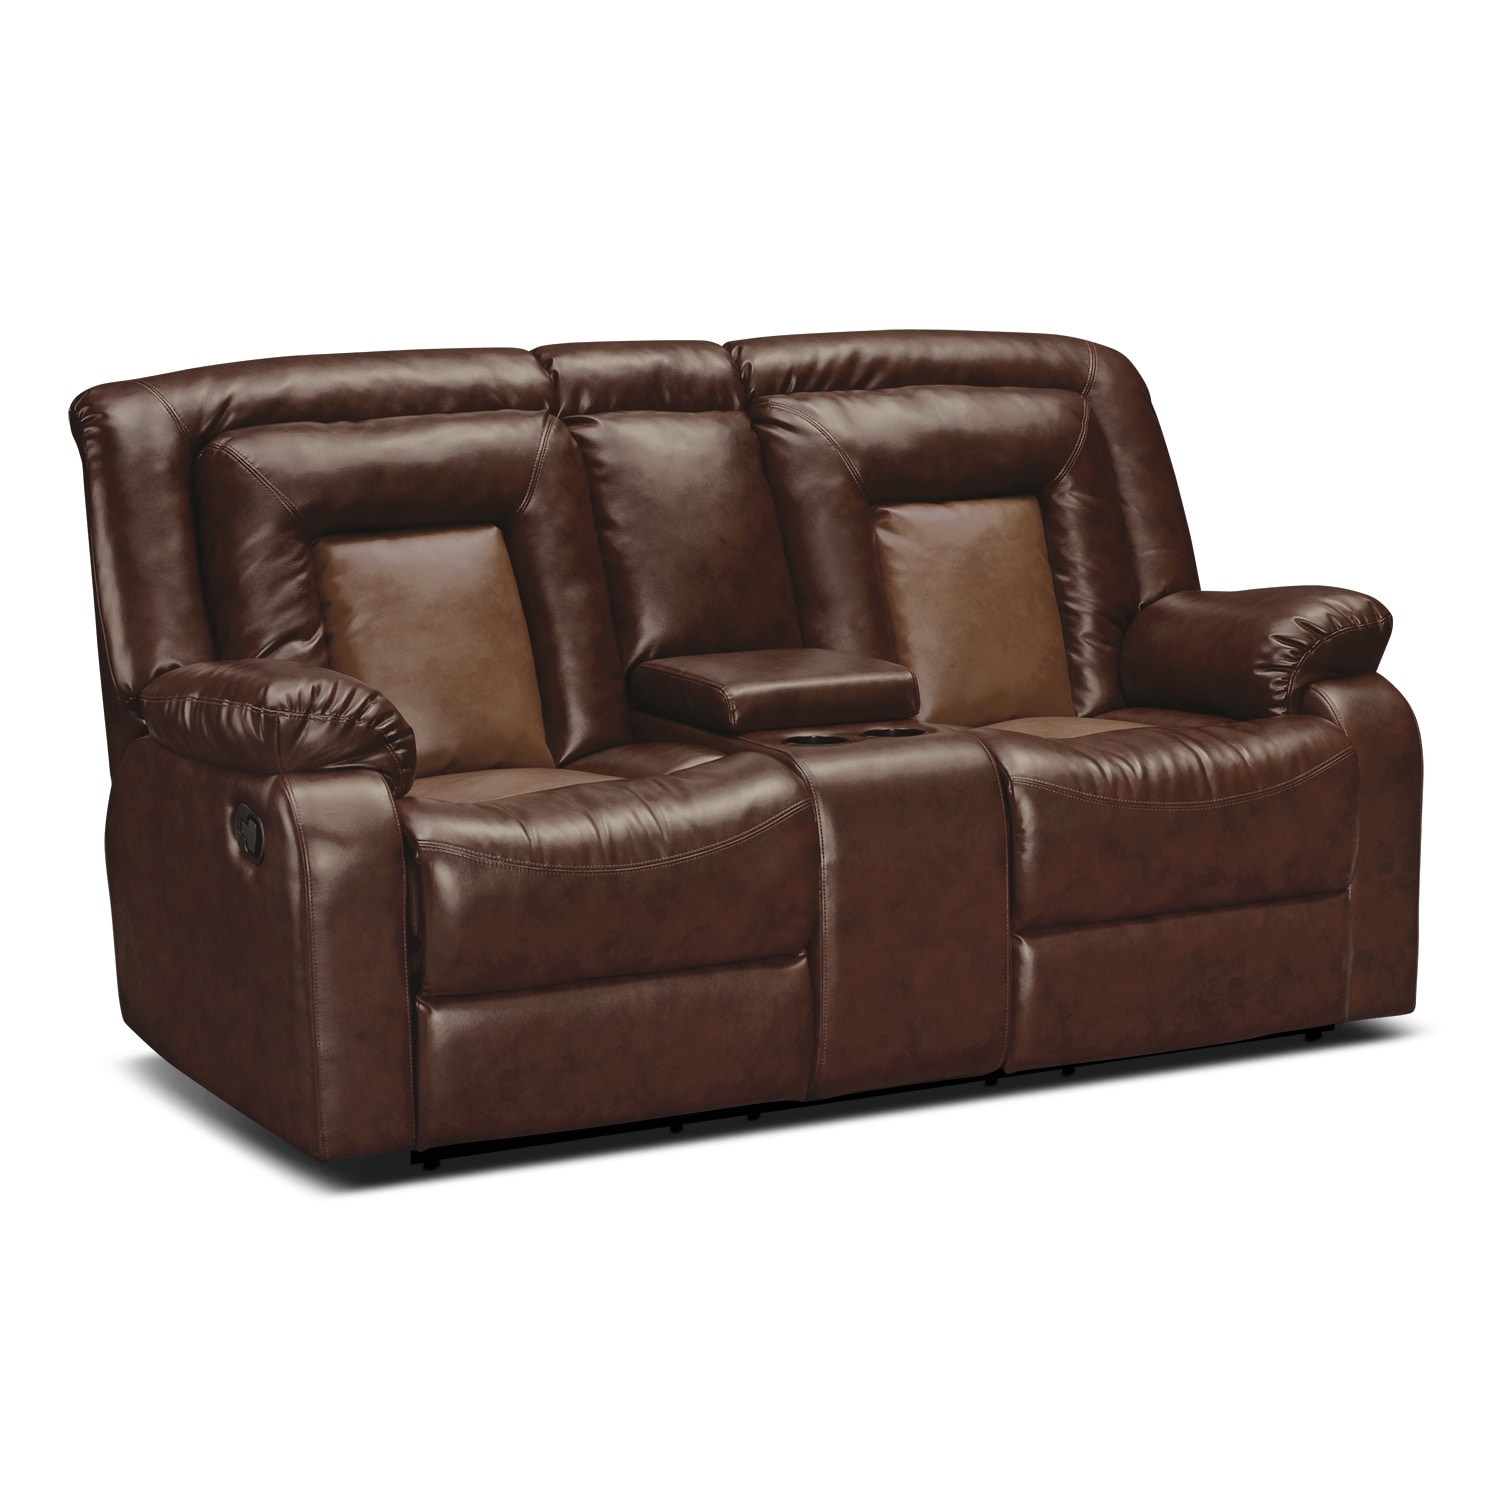 Living Room Furniture - Cobra Dual Reclining Loveseat